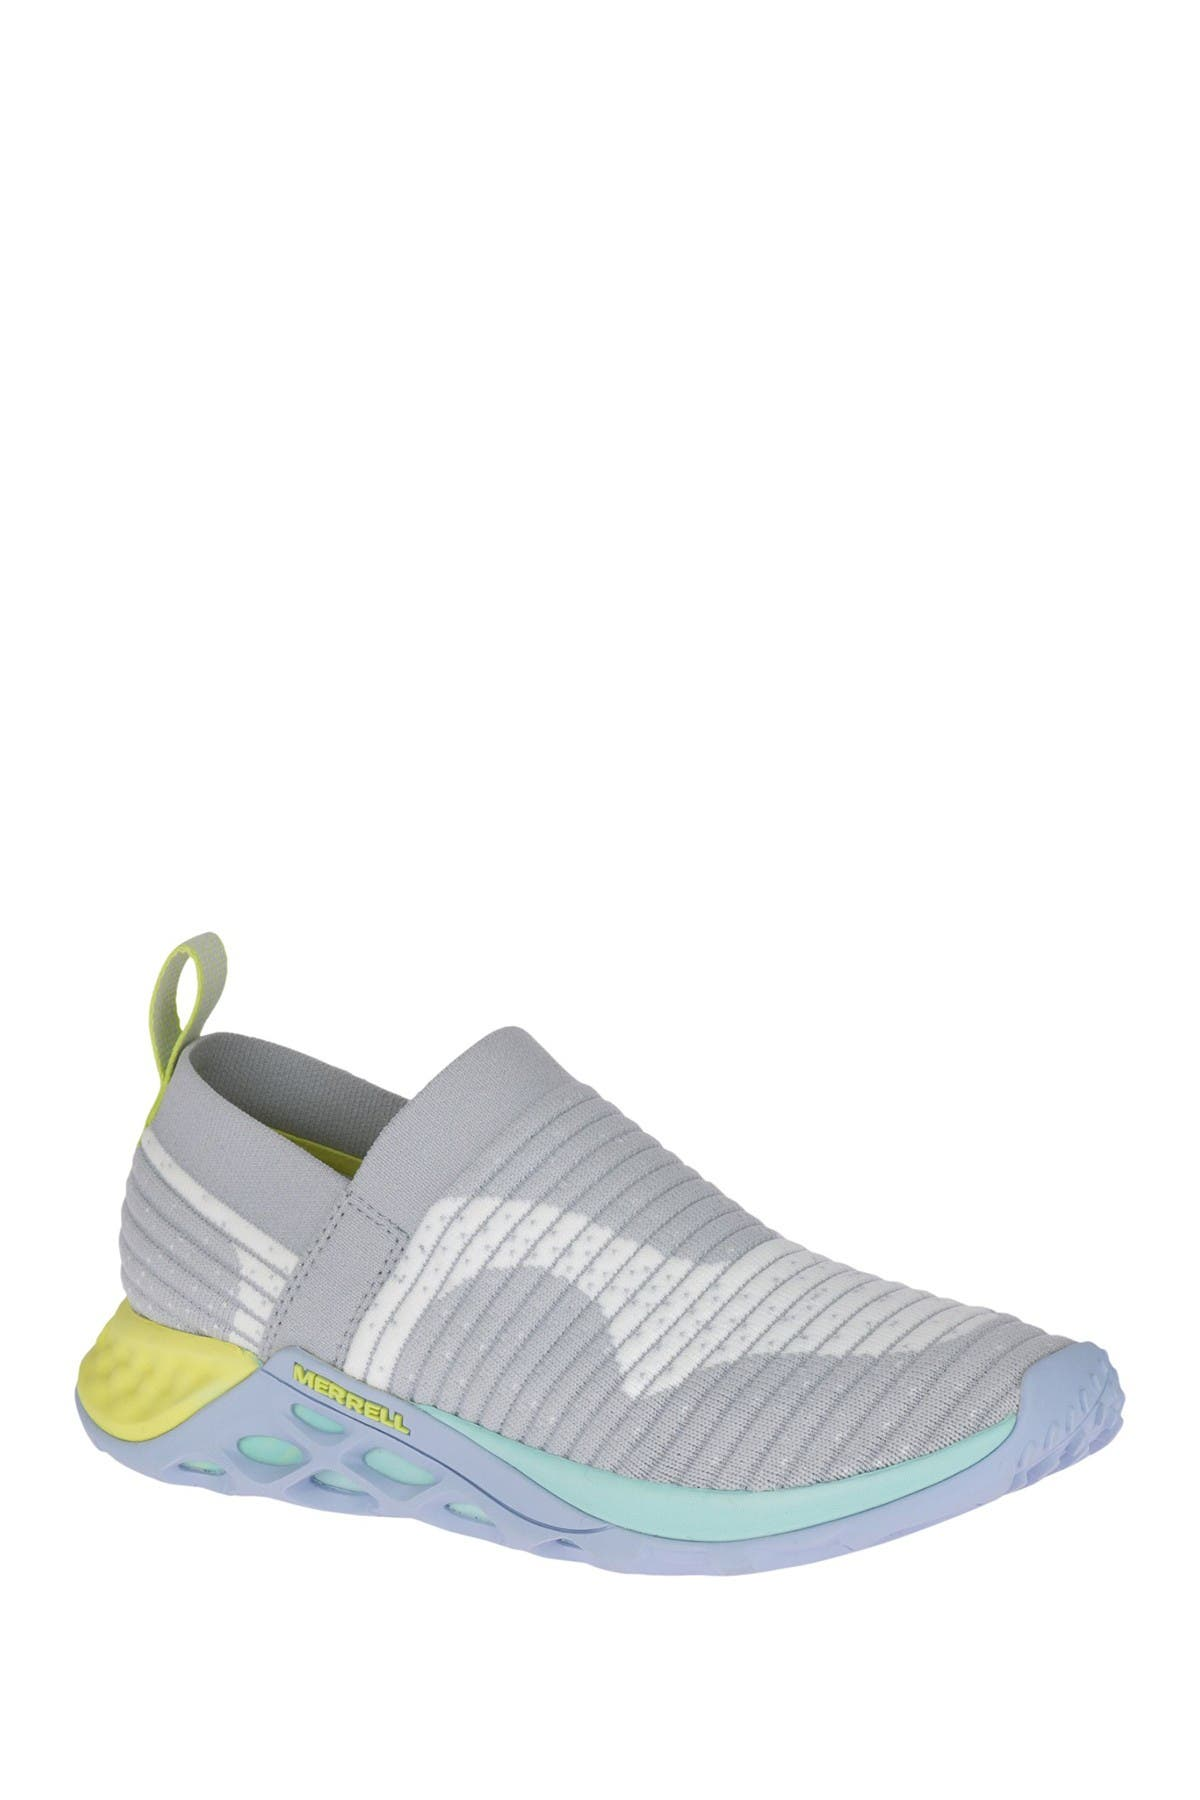 Image of Merrell Range Laceless AC Slip-On Sneaker